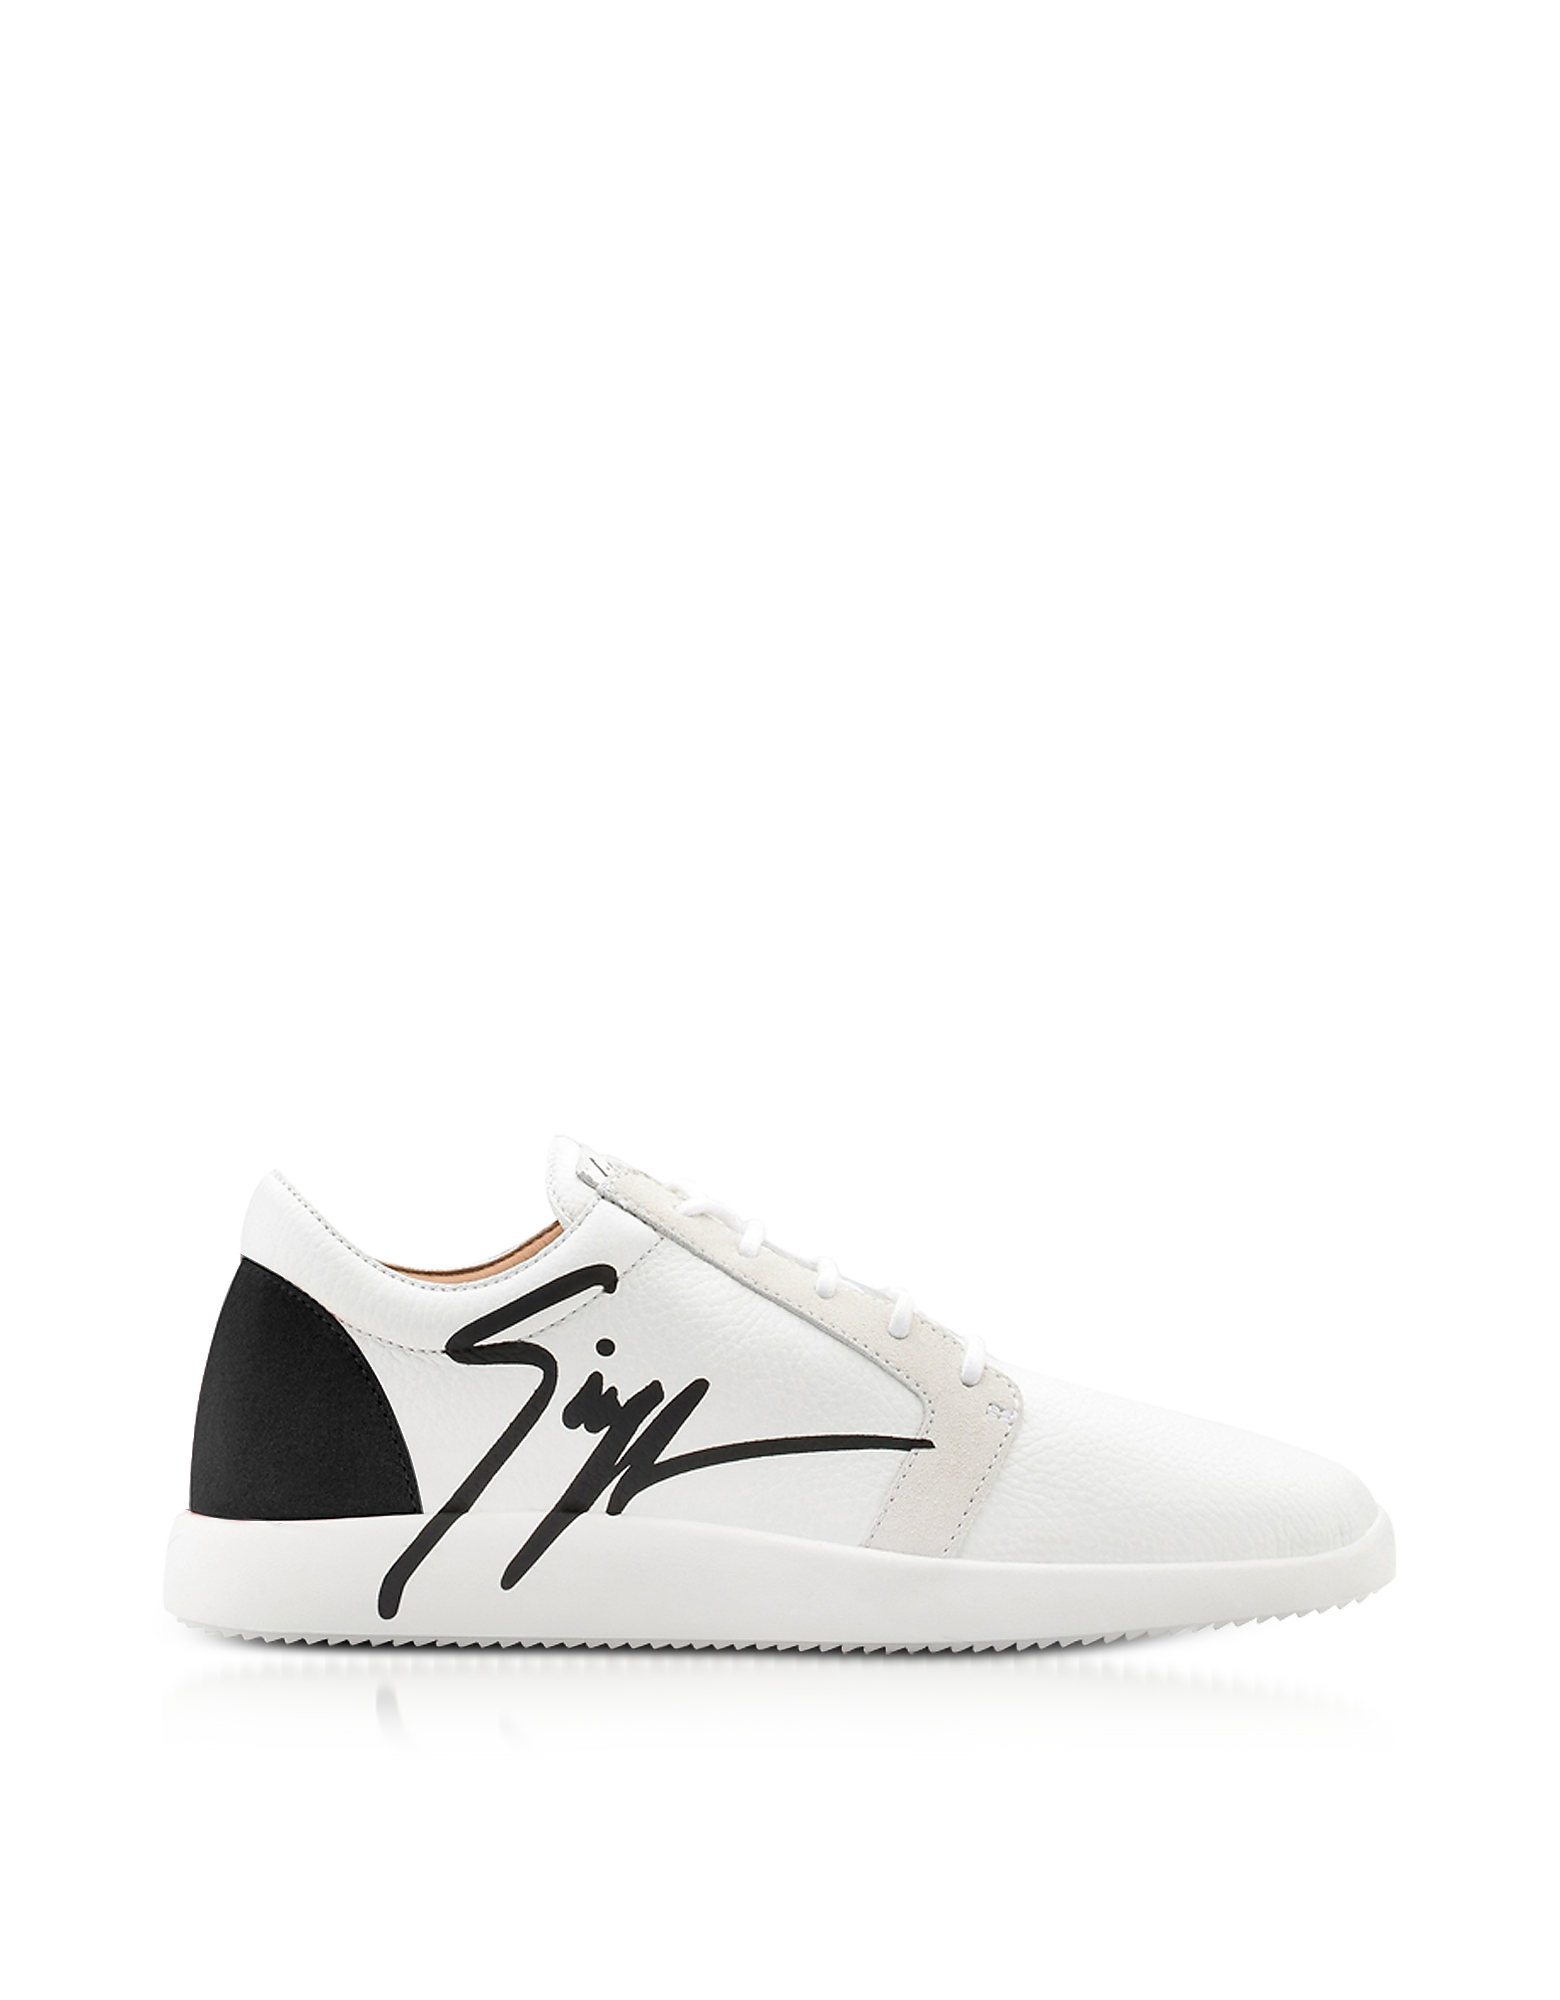 Giuseppe Zanotti Shoes, G Runner Black and White Low Top Men's Sneakers